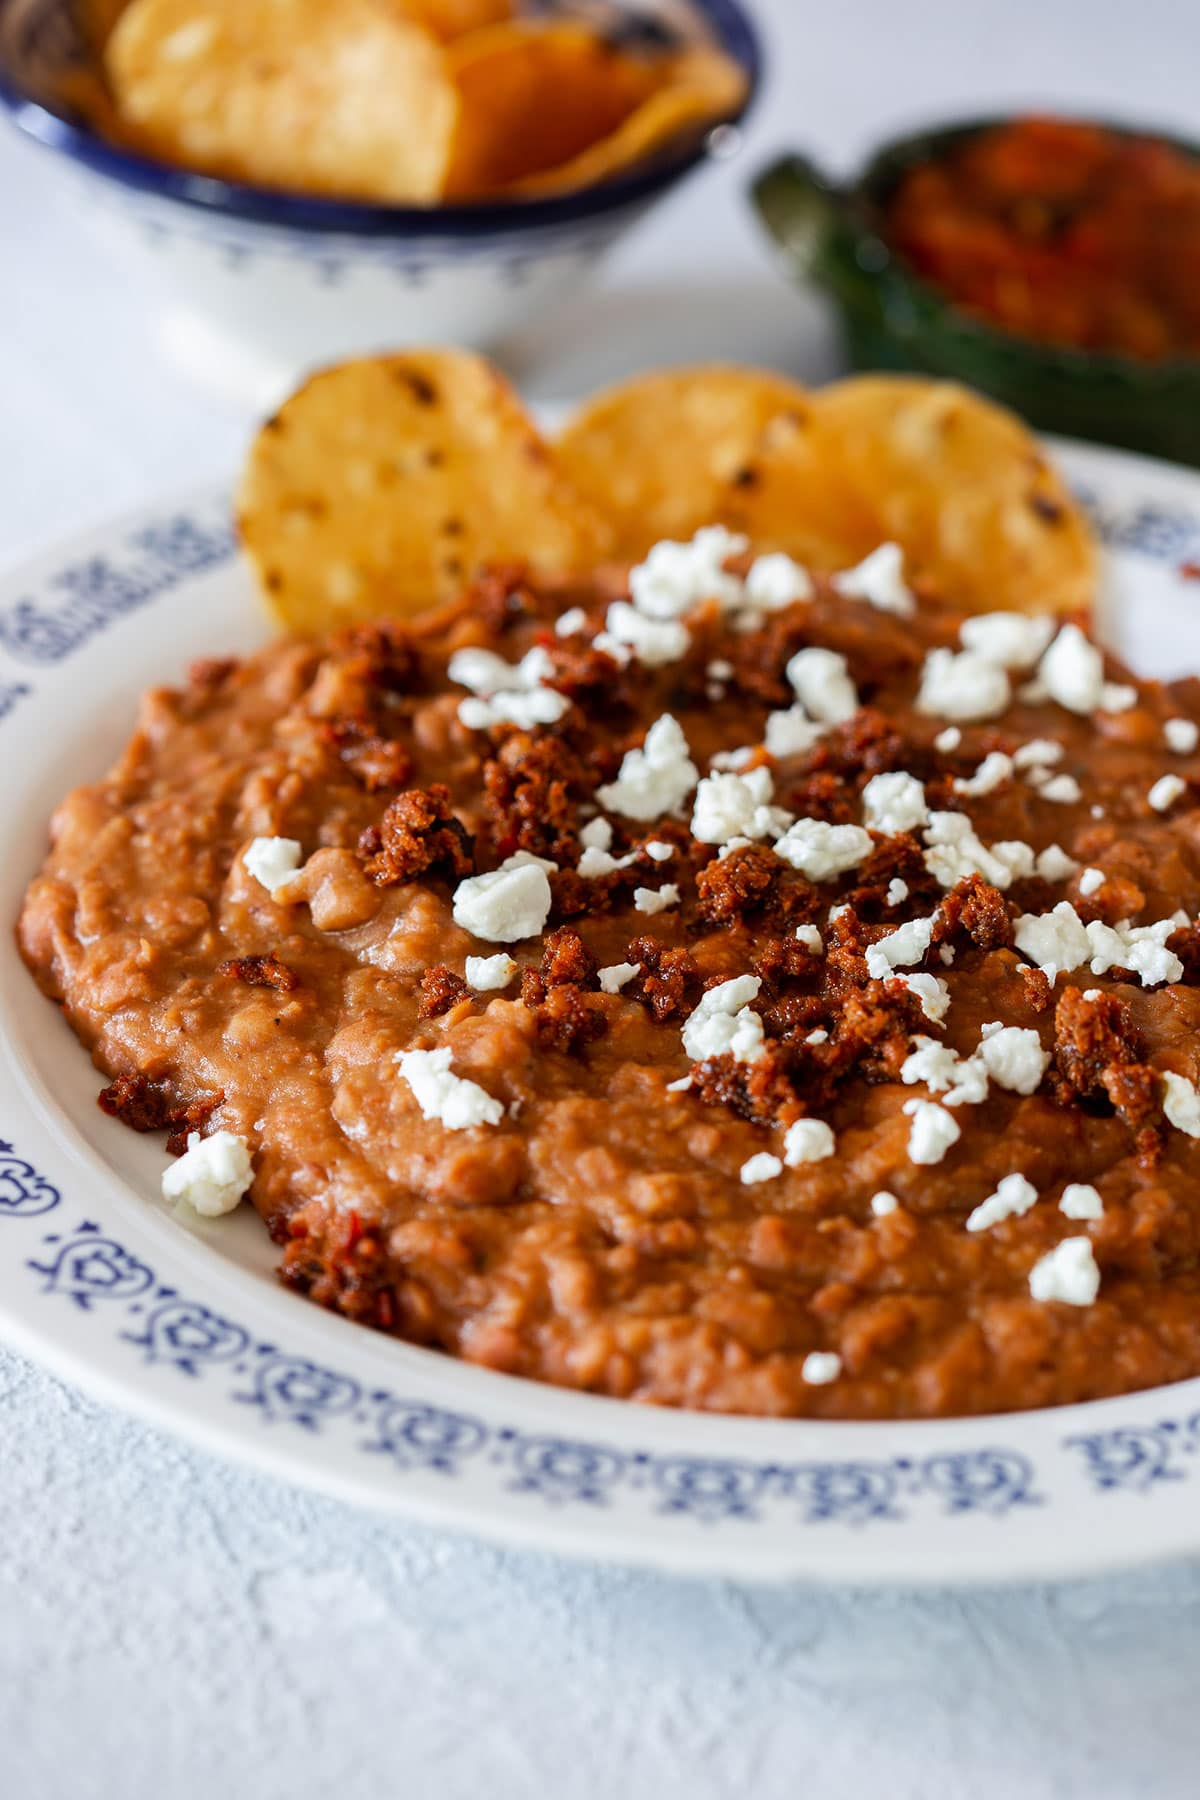 Chorizo and beans served with cheese and totopos.